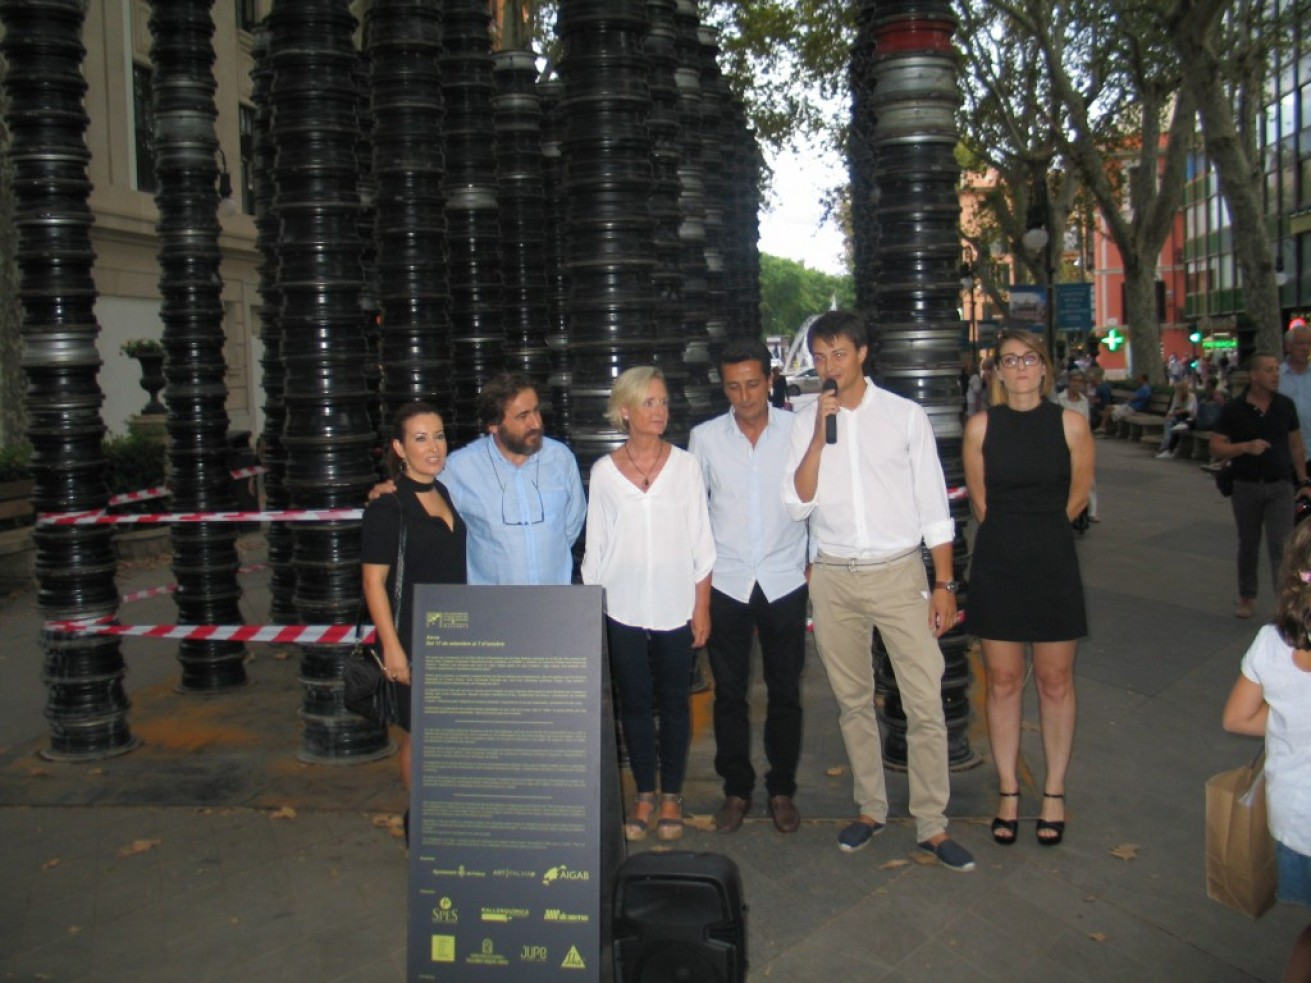 Grupo Ferrà cooperates with the COAIB for the exposition at the Nit de l'Art